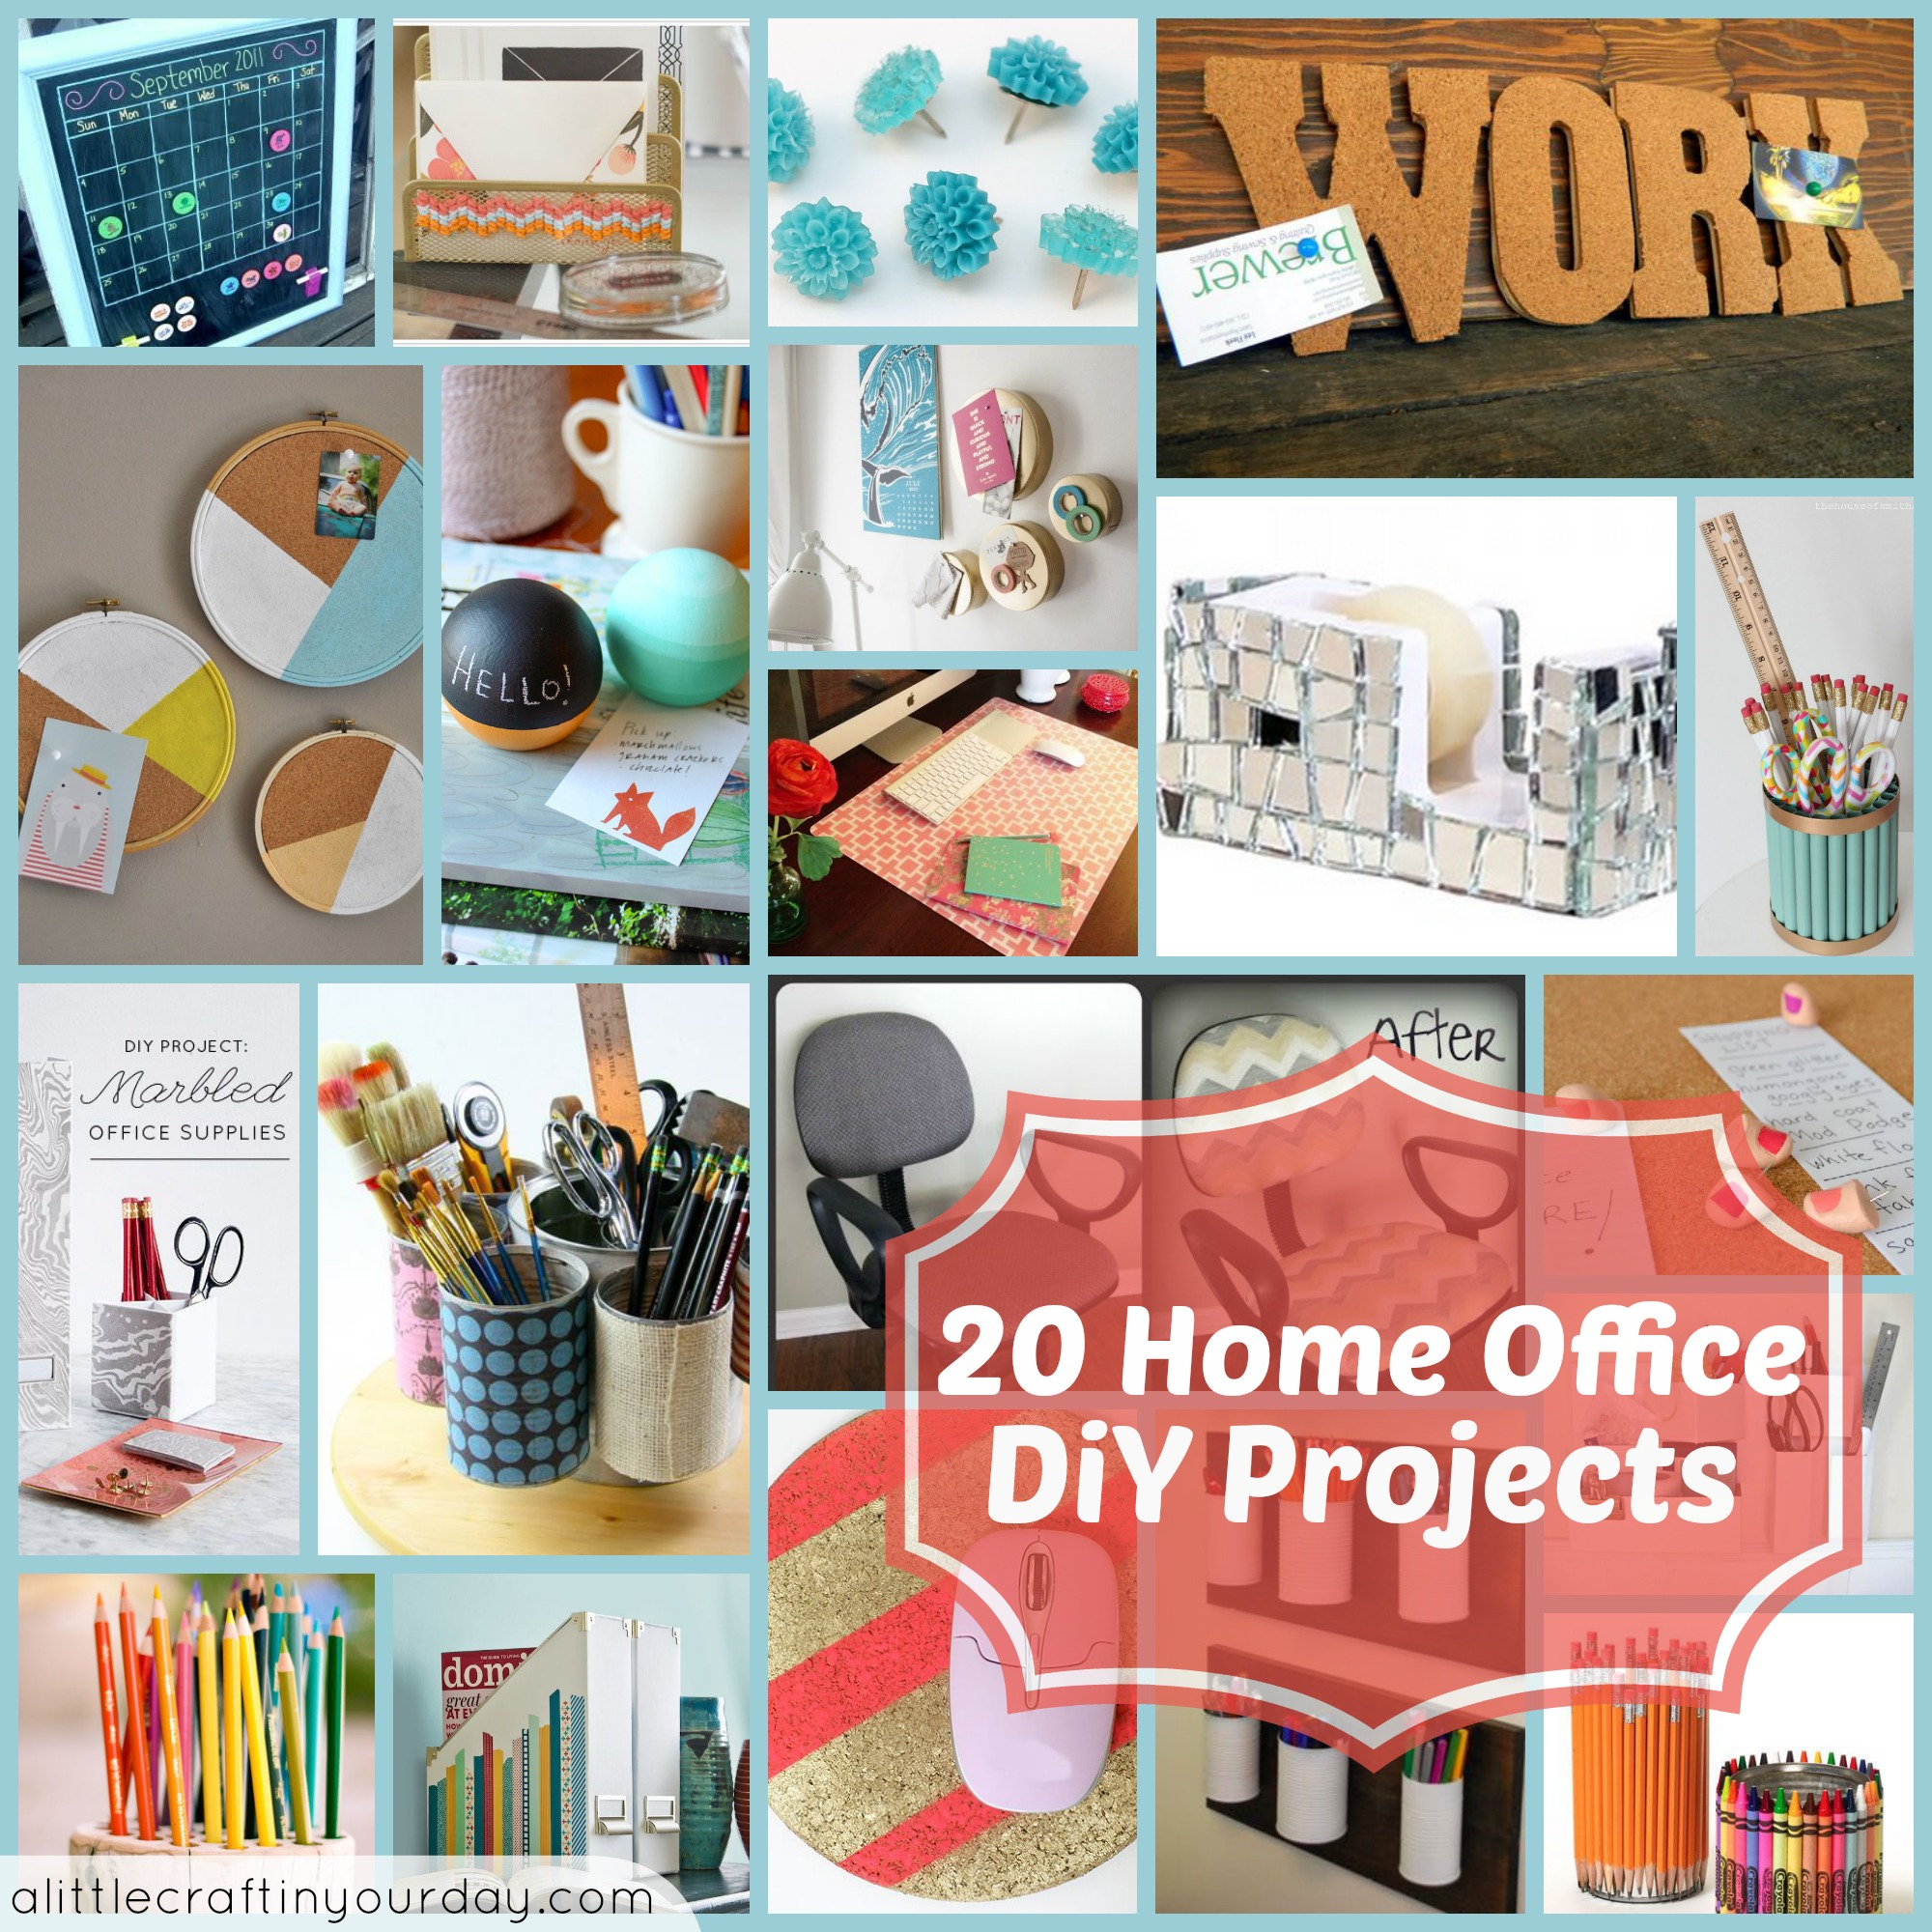 Home office diy diy home office itook home office diy office home diy n solutioingenieria Choice Image